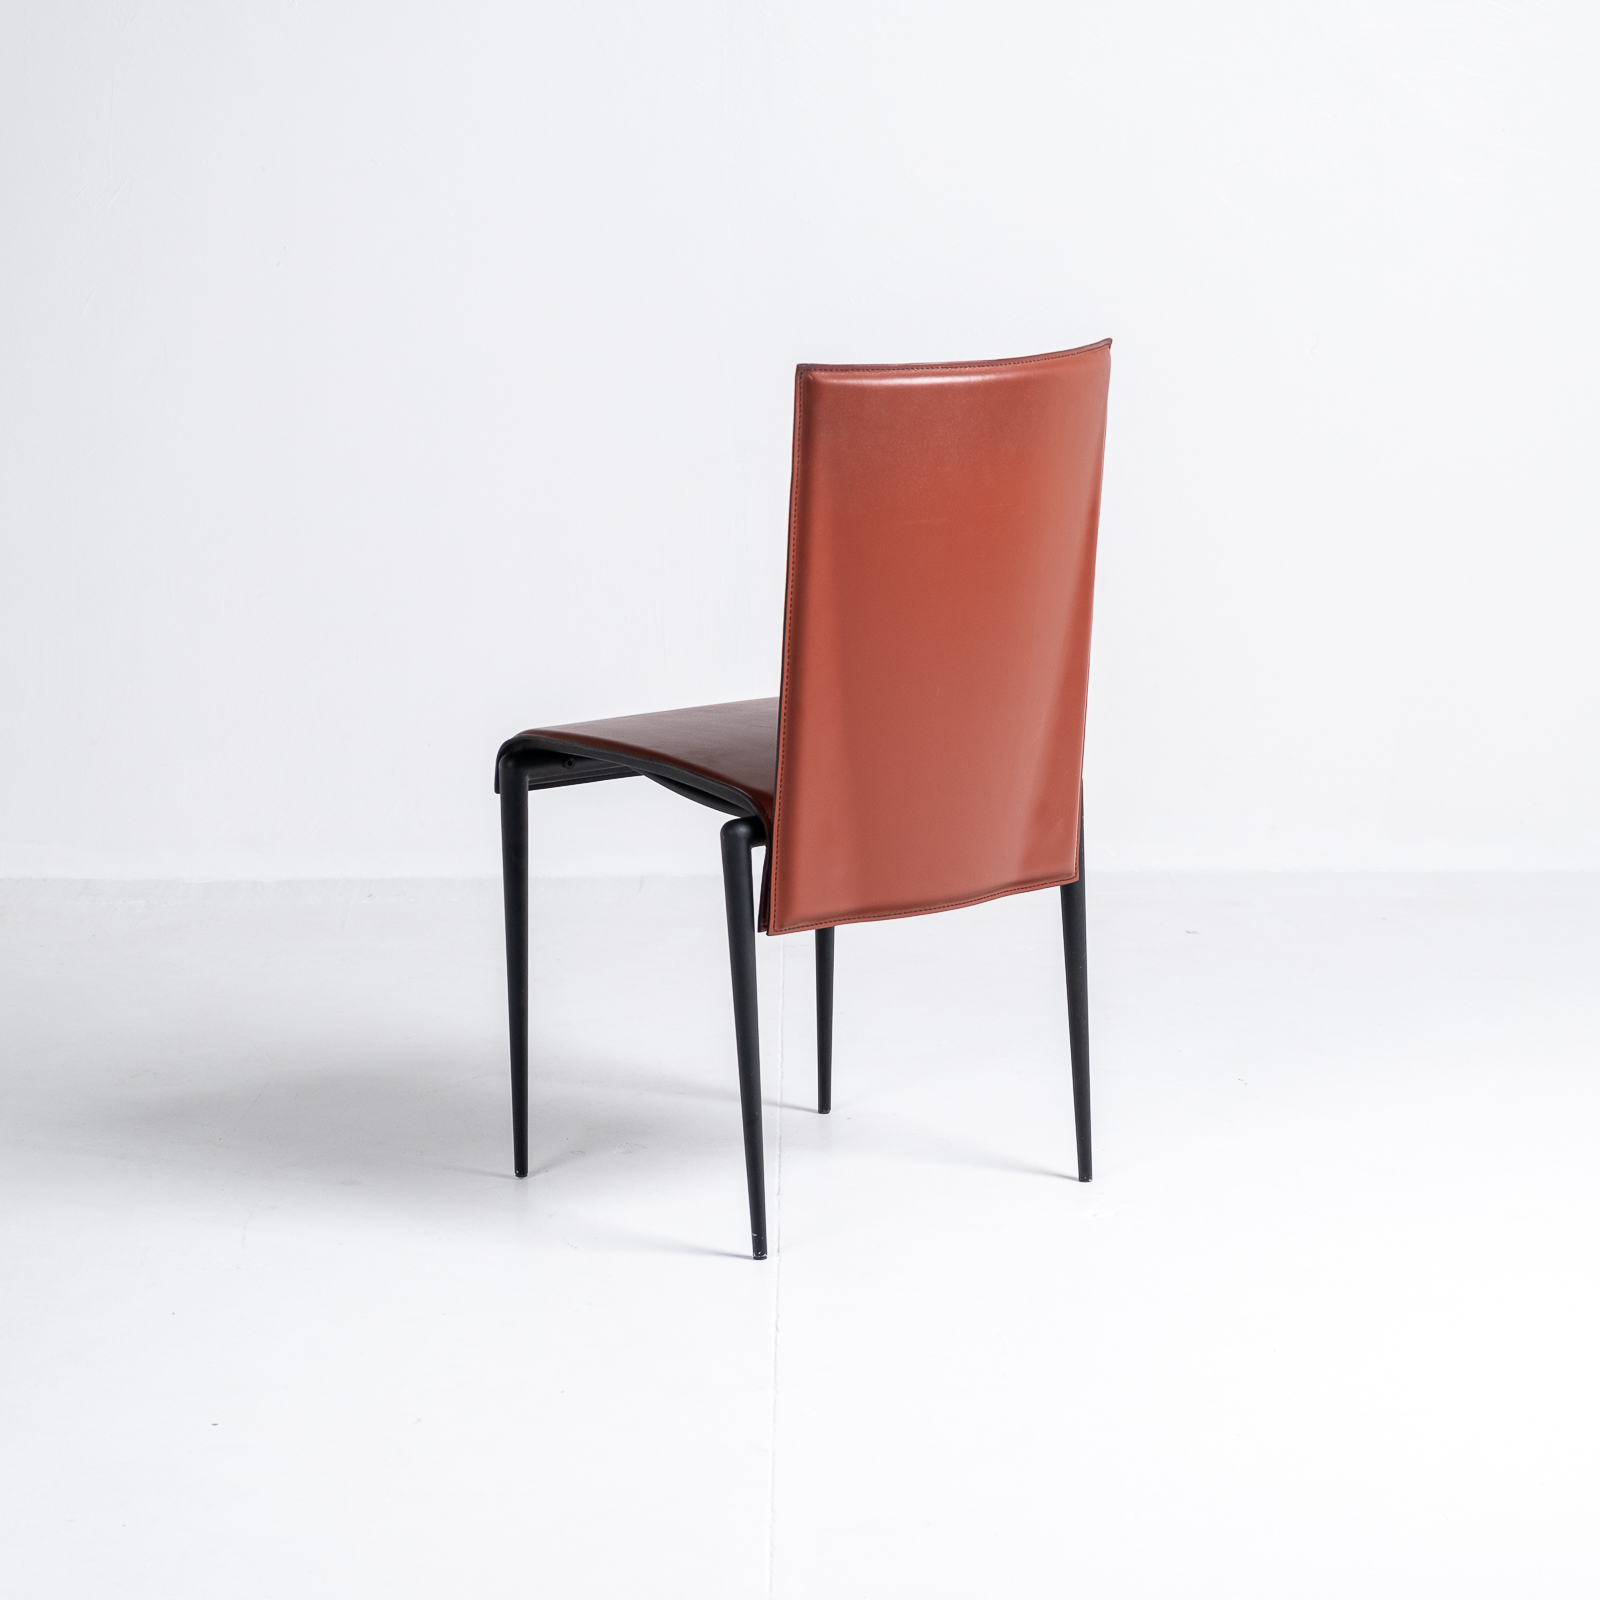 High Back Chair By Cidue In Red Leather, 1970s, Italy 02